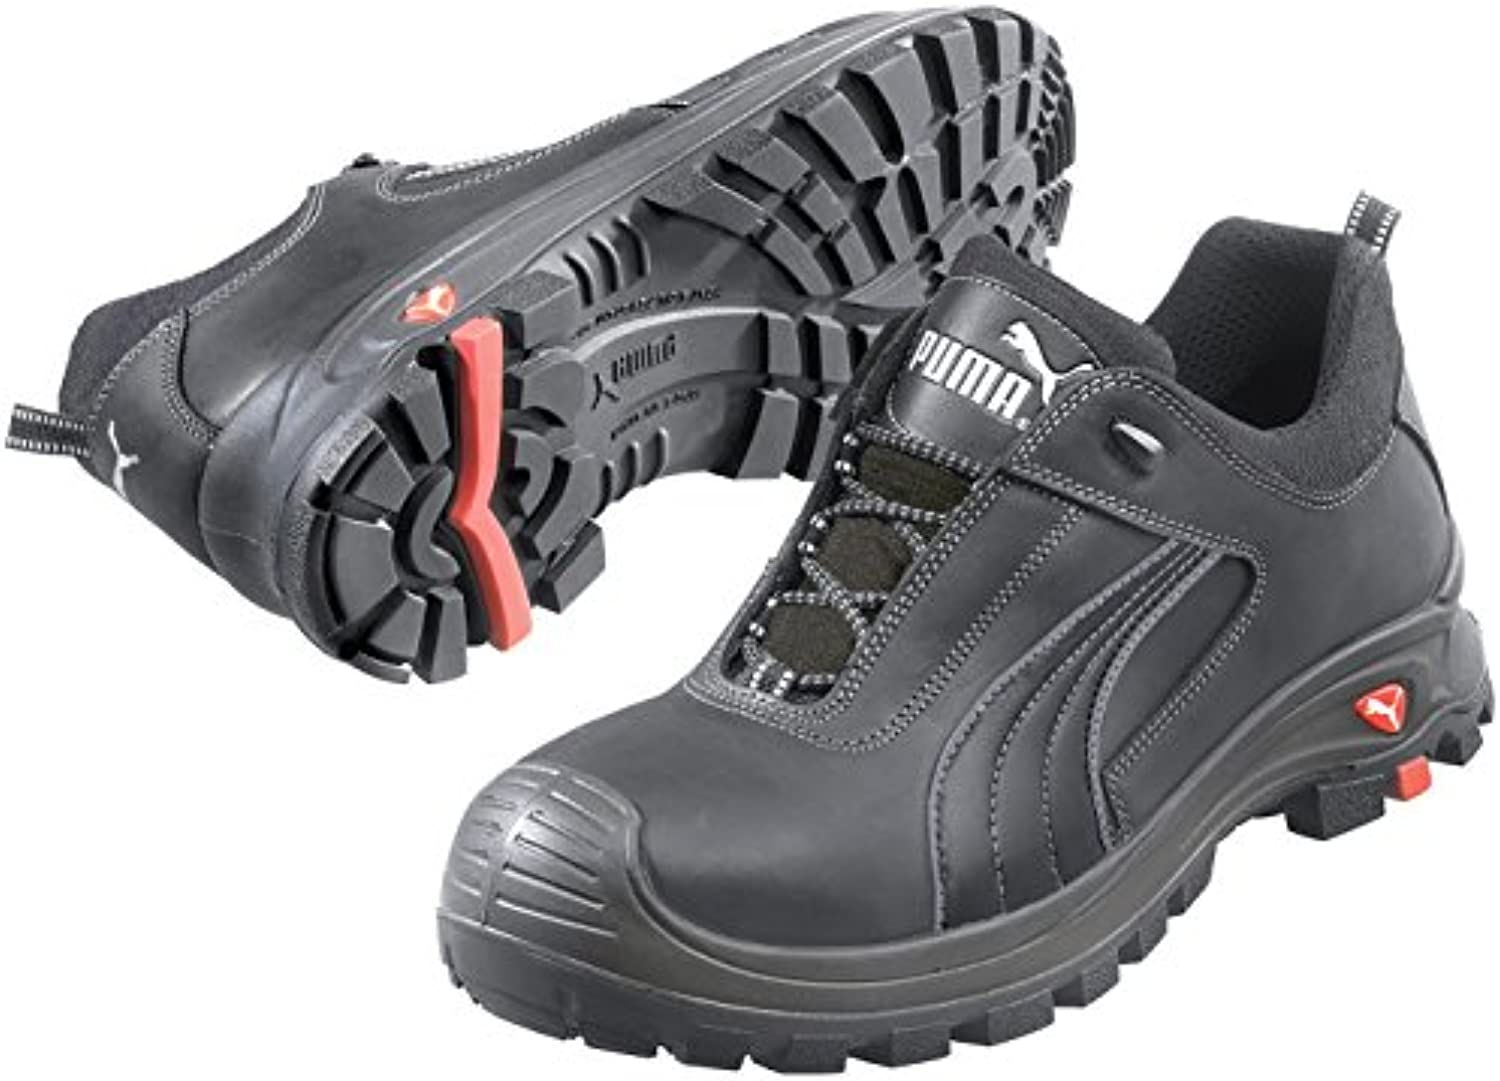 Puma Men's Safety Cascades Eh Low Safety Toe Boots